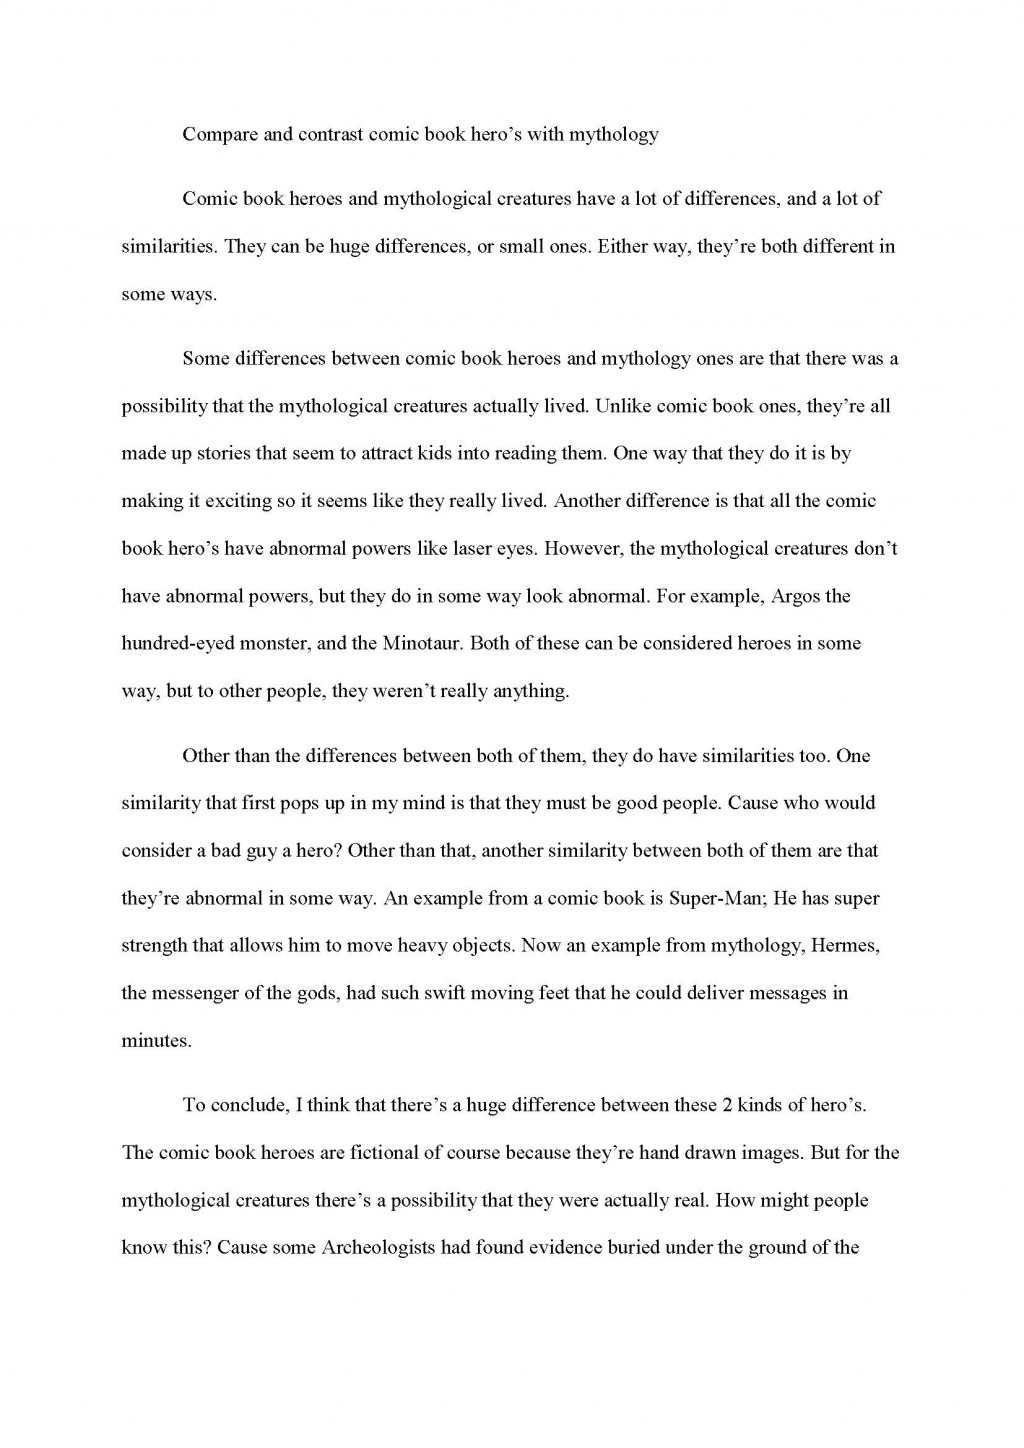 004 How To Conclude Compare And Contrast Essay Sample Fantastic A Start Writing Comparison Write Begin Large